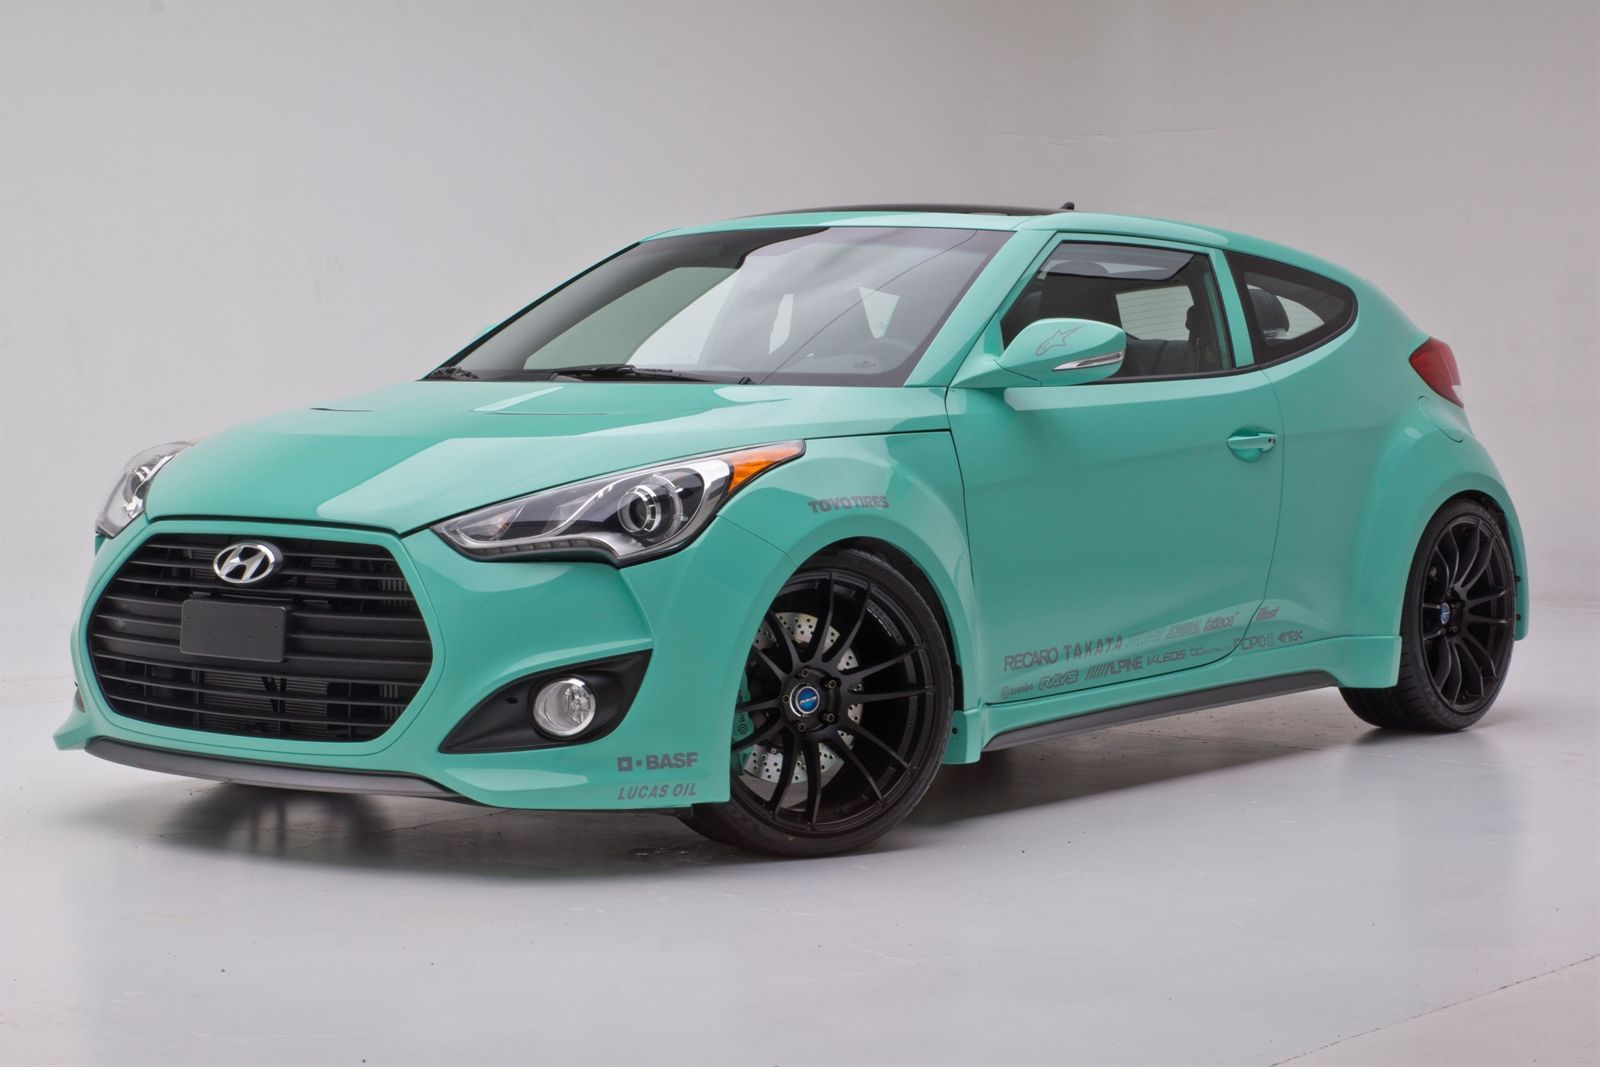 Hyundai veloster wallpaper for android mpw cars pinterest hyundai veloster cars and veloster turbo